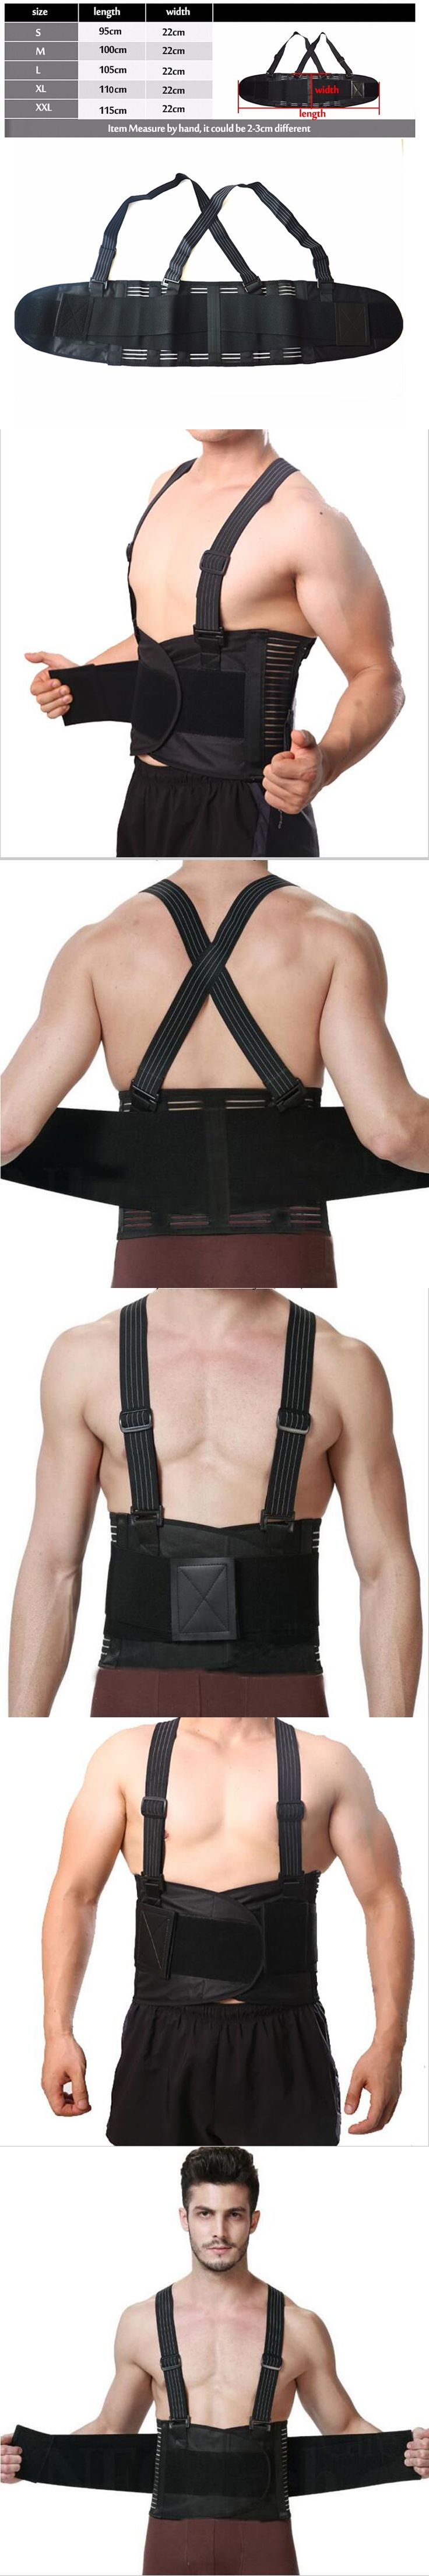 Breathable Posture Corrector Pain Belt Back Corset for Men Back Support Brace Shoulder Straps Lumbar Support Belt Y001